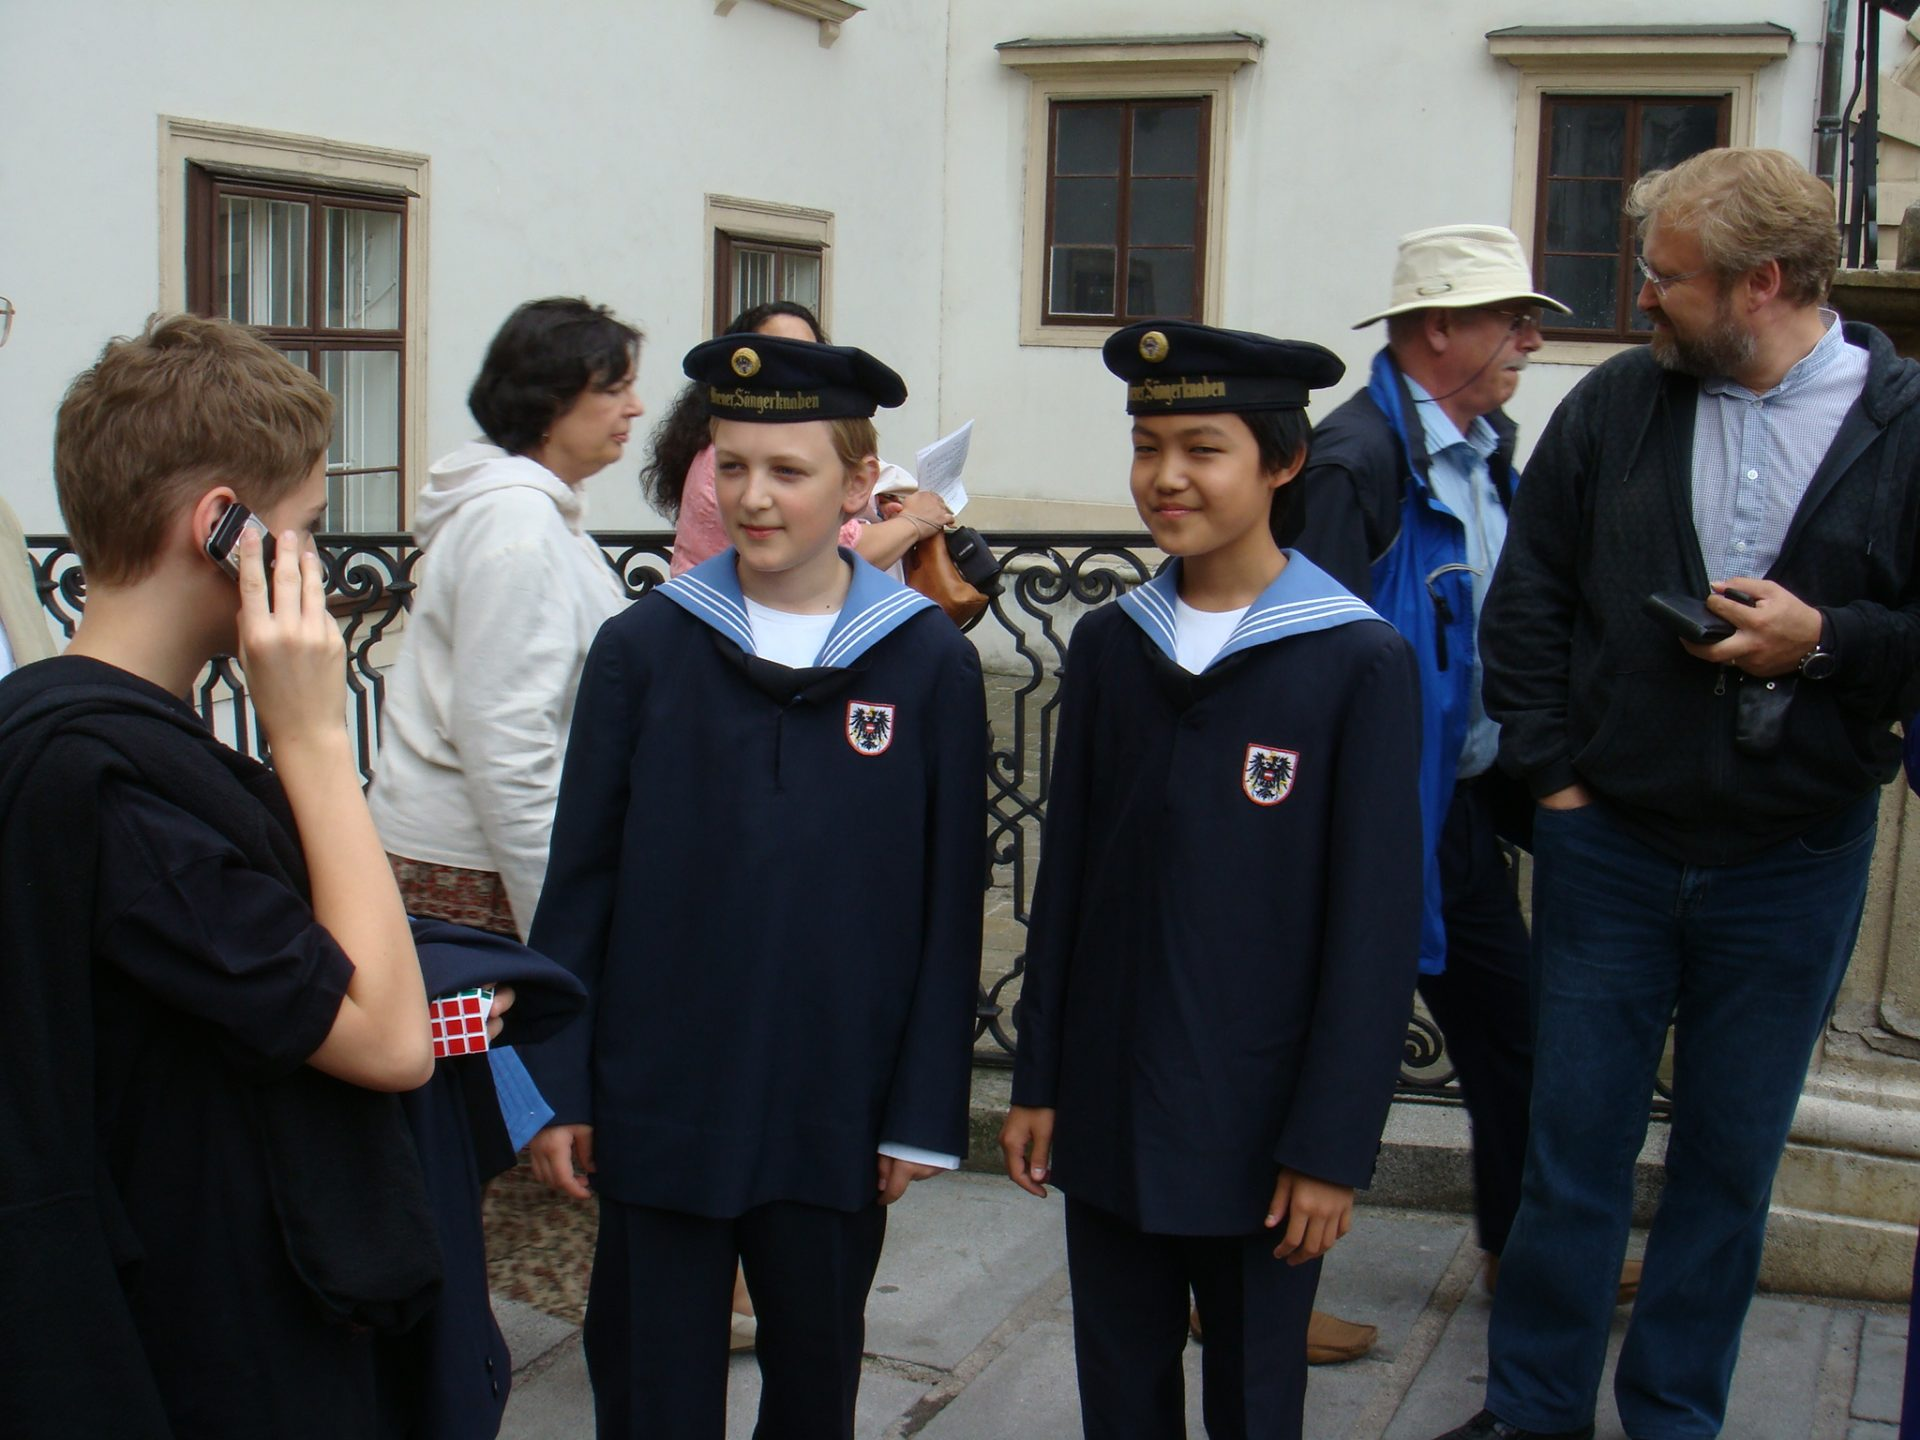 Two of the boys in the Vienna Boys' Choir